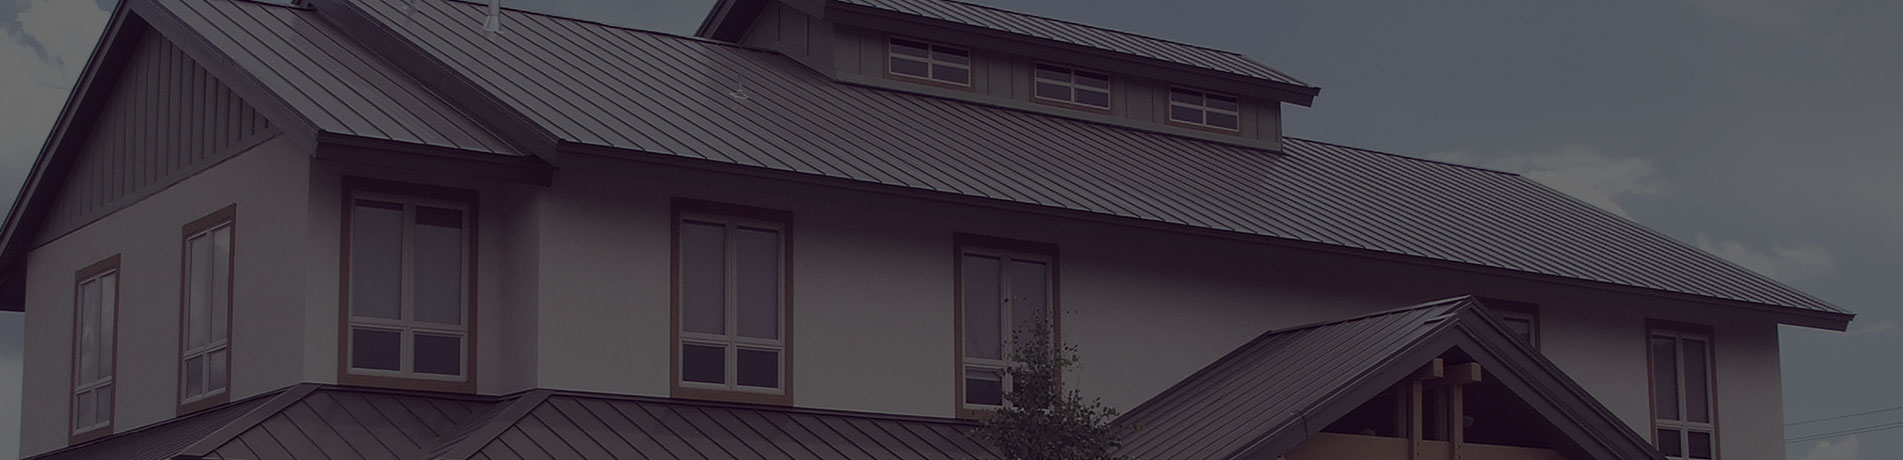 Professional Roofing Services in Greater Atlanta